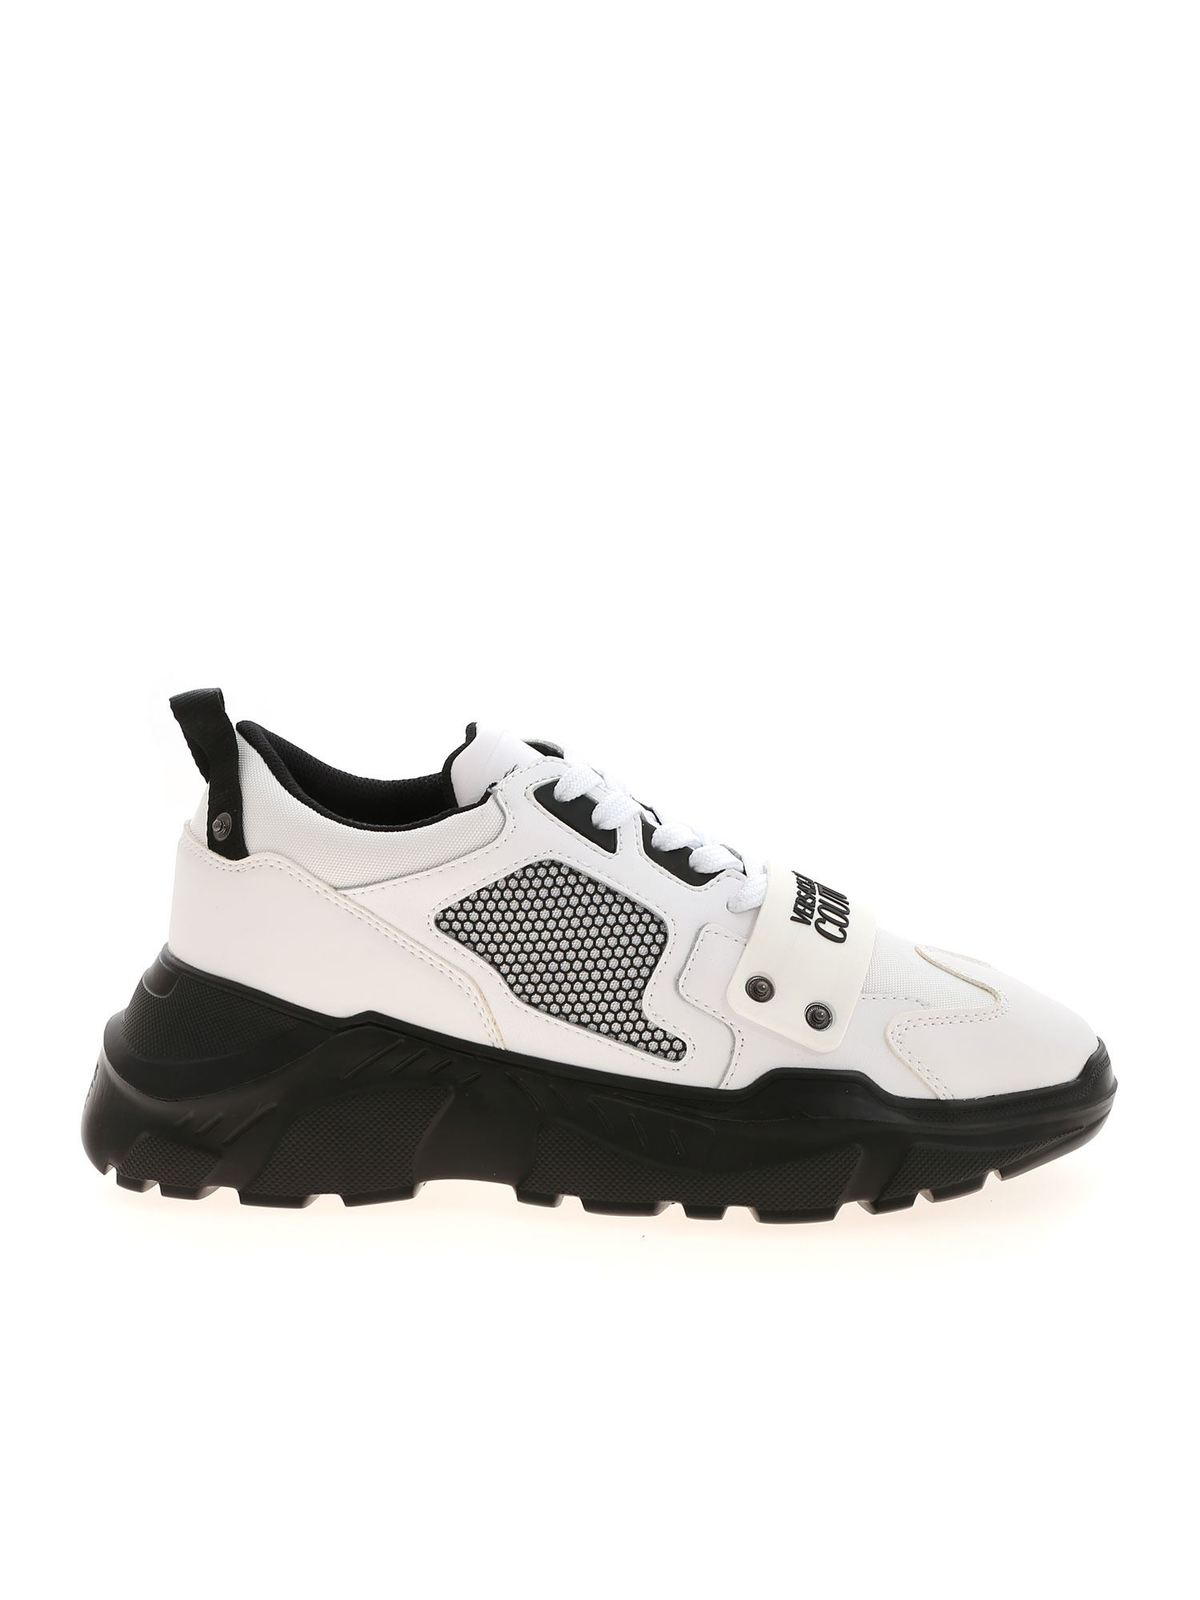 VERSACE JEANS COUTURE SNEAKERS WITH RUBBERIZED LOGO IN WHITE